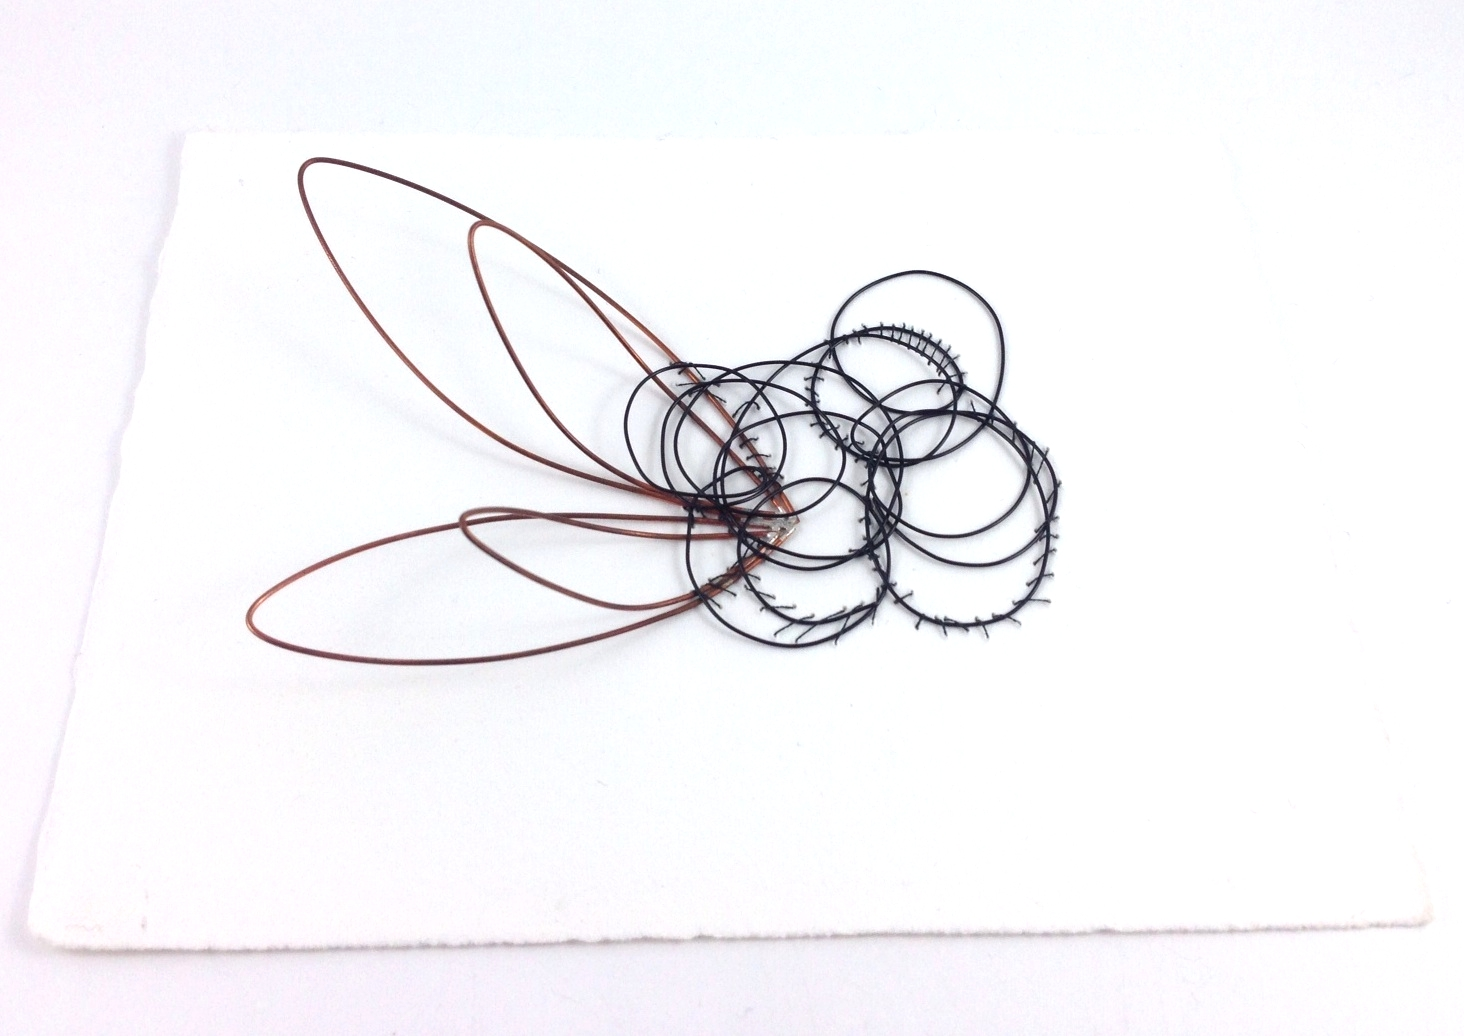 Stitched Wings and Tornado Sketch.jpg